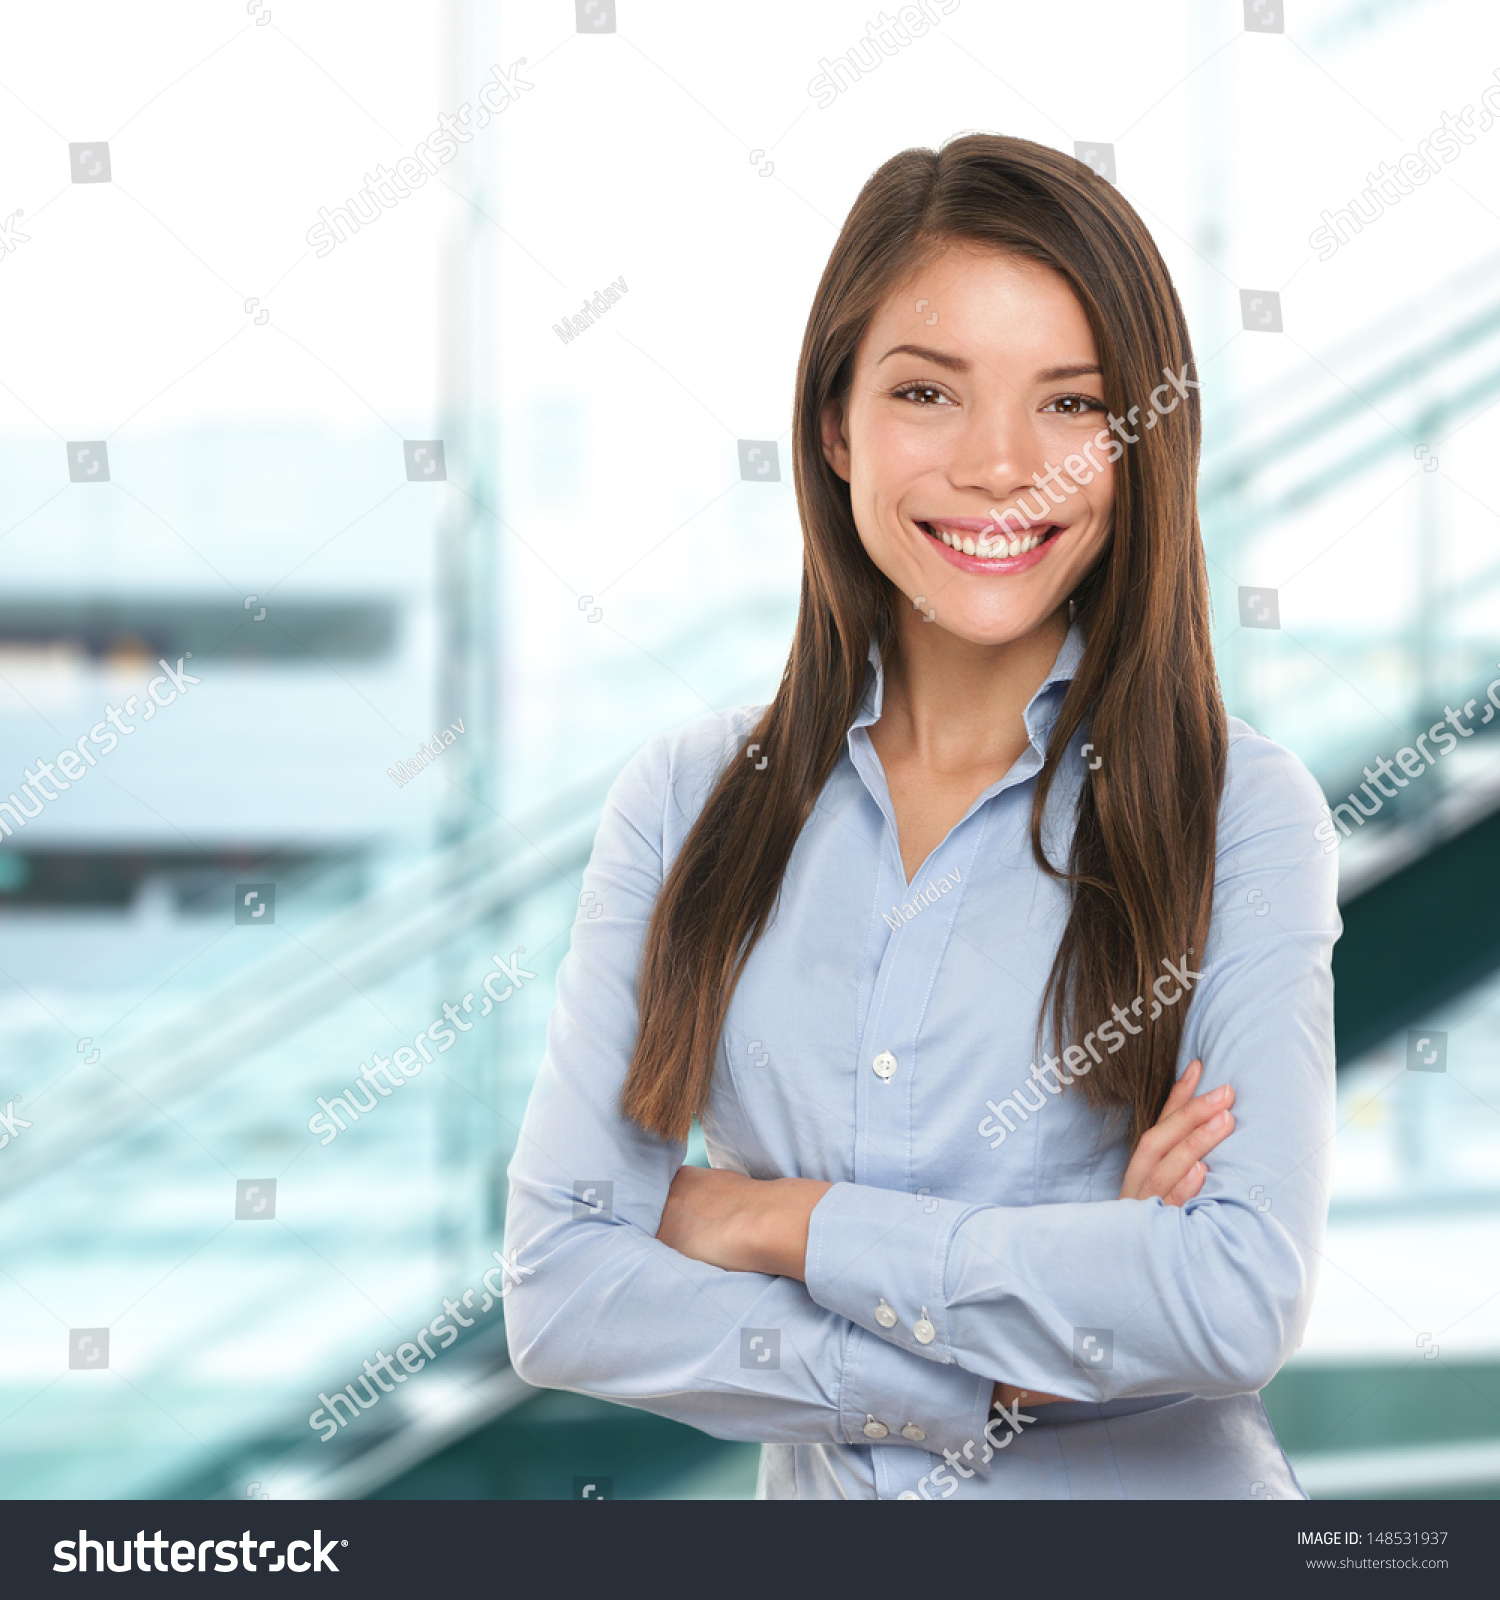 successful business w confident portrait female stock photo successful business w confident portrait female businessw standing proud and cross armed looking at